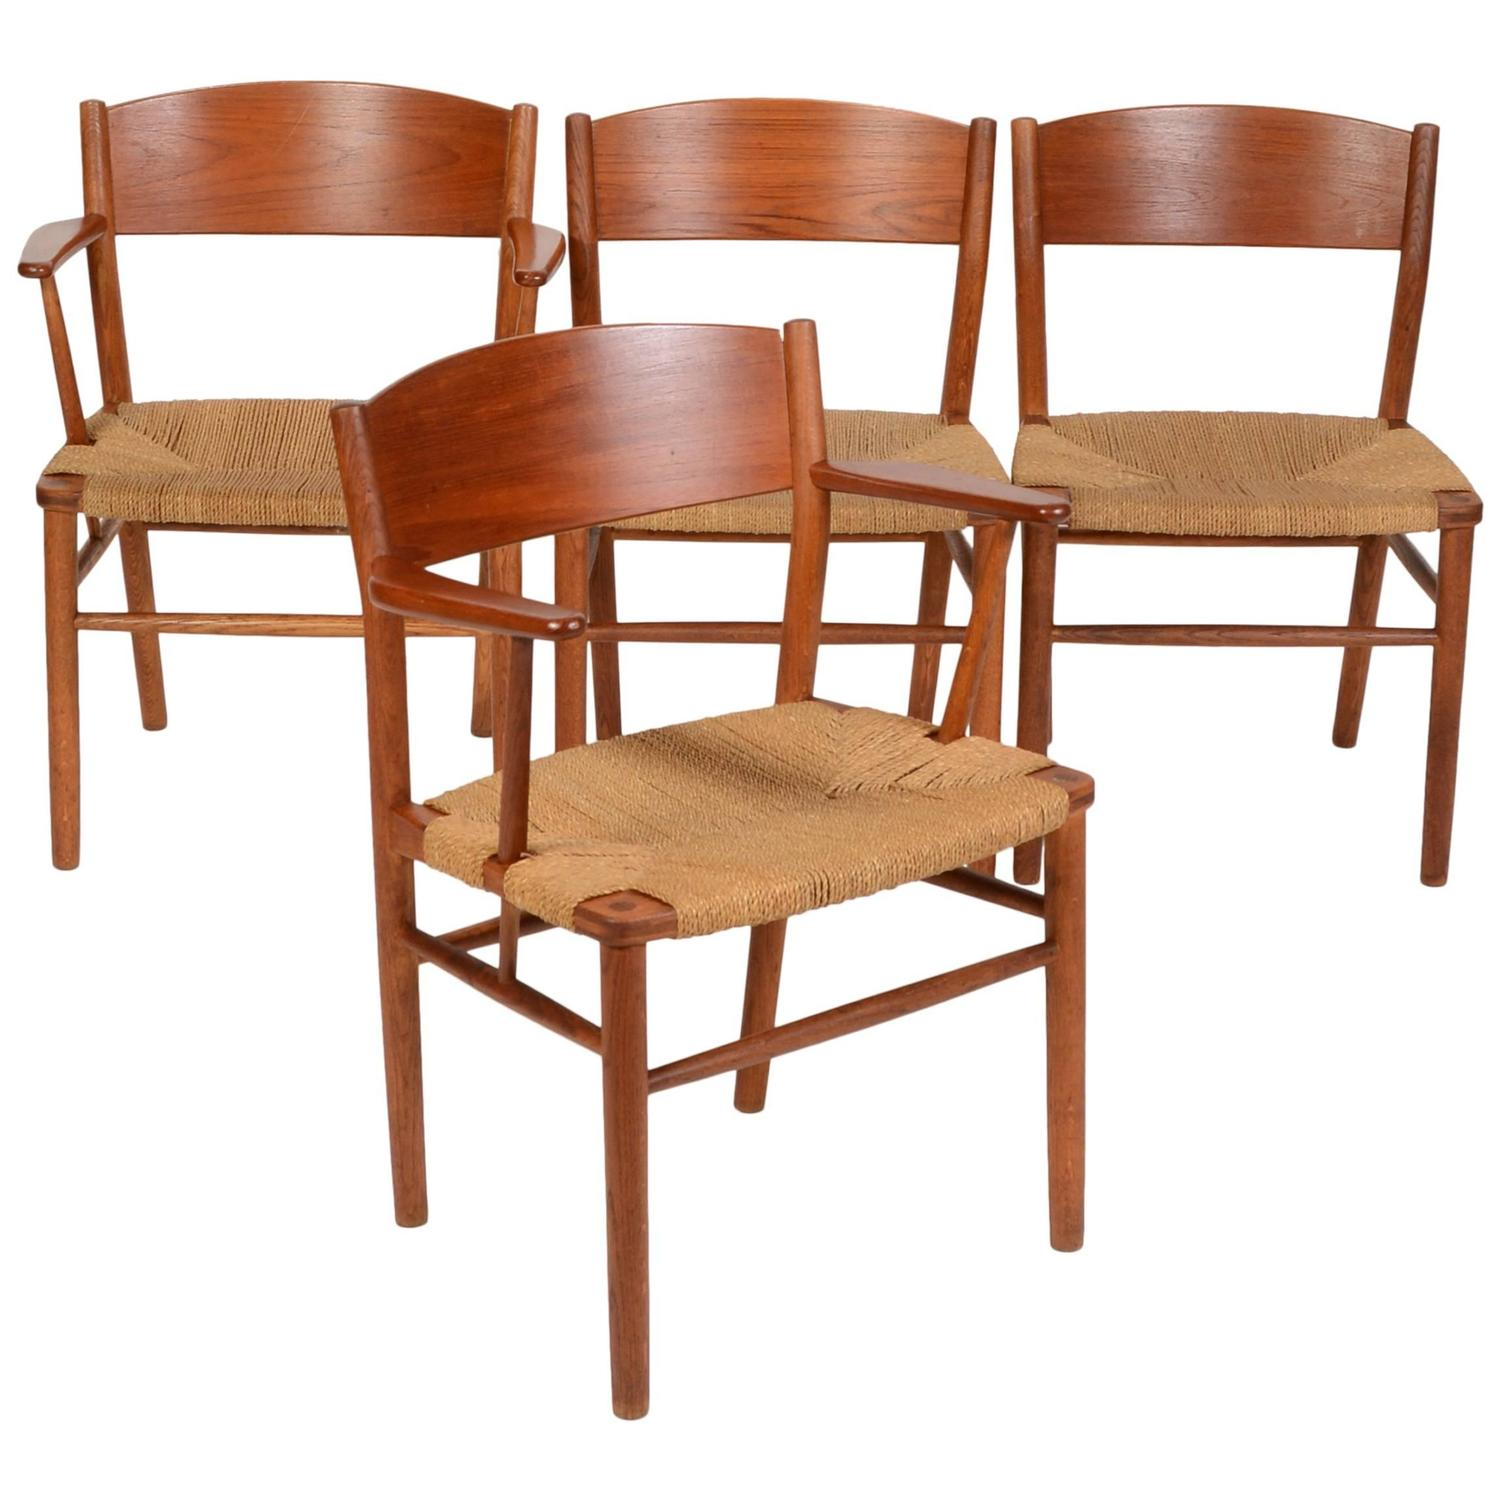 Seagrass Dining Chair Set Of Four Børge Mogensen Seagrass Dining Chairs